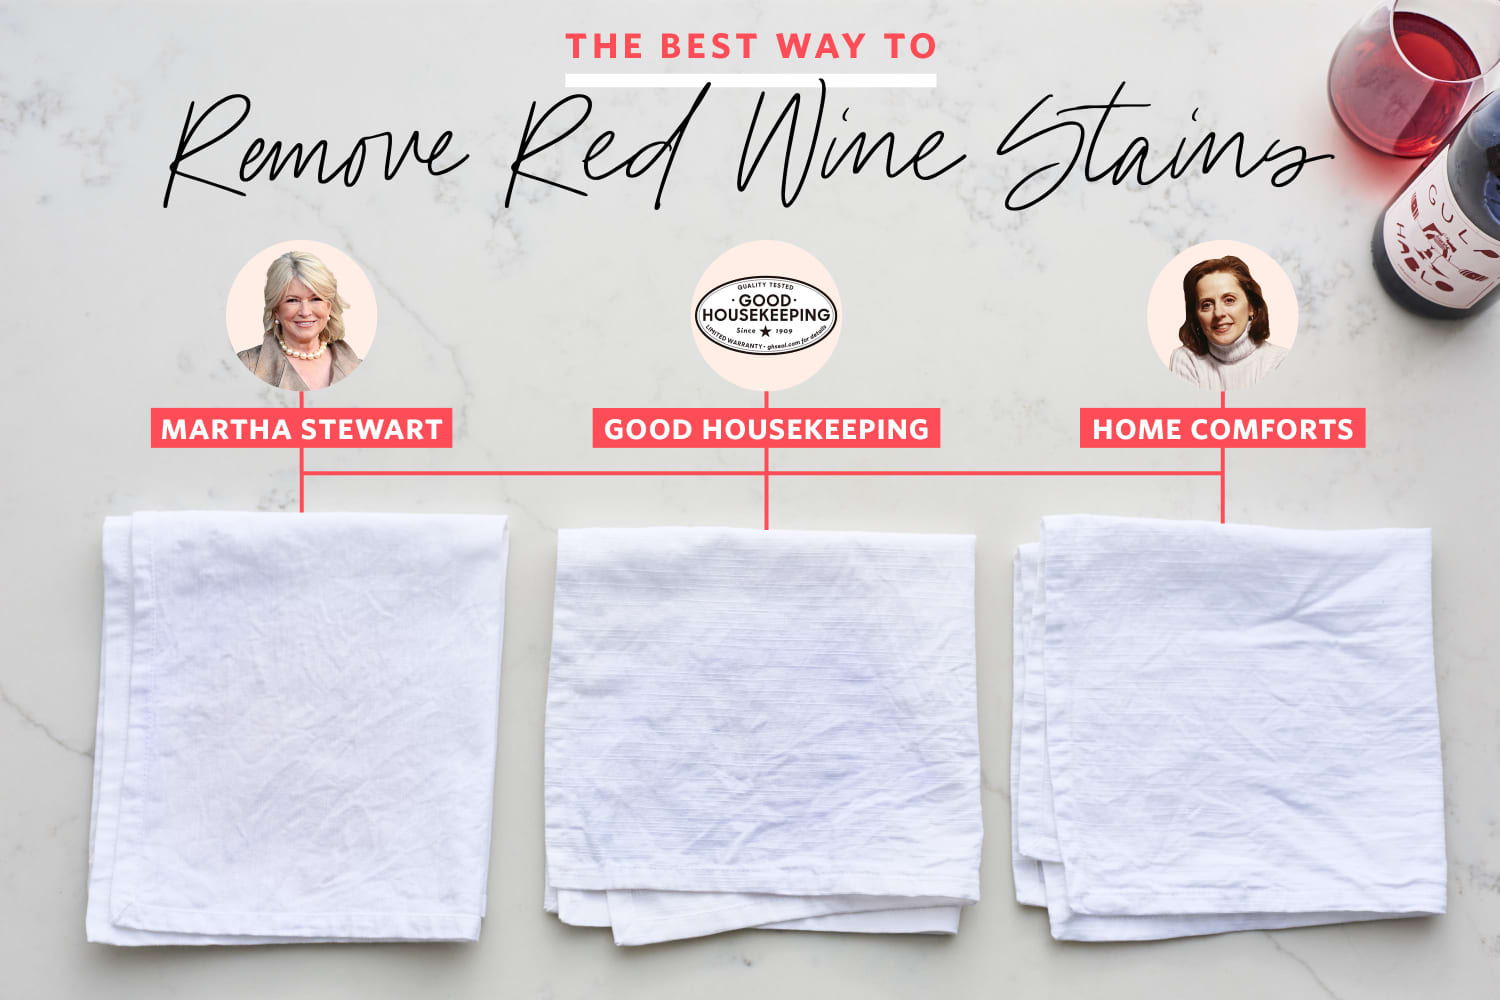 We Tested 3 Popular Methods for Removing Red Wine Stains and Found a Clear Winner